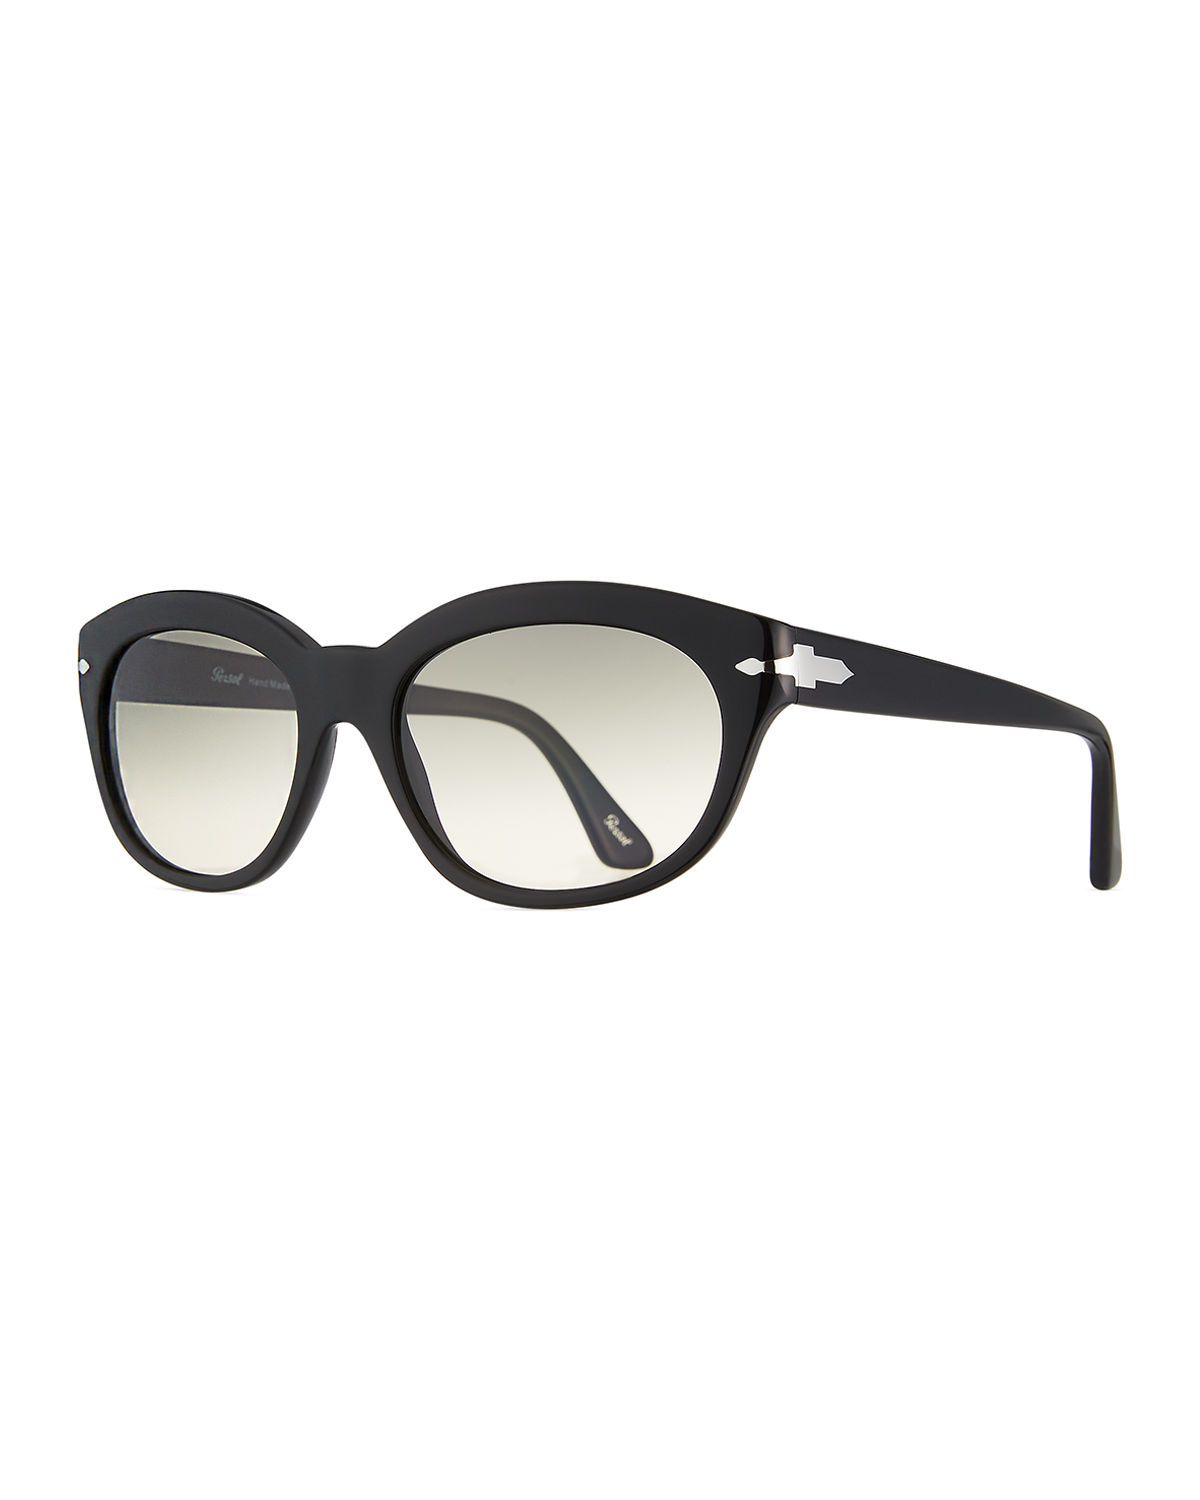 Persol OVAL ACETATE SUNGLASSES